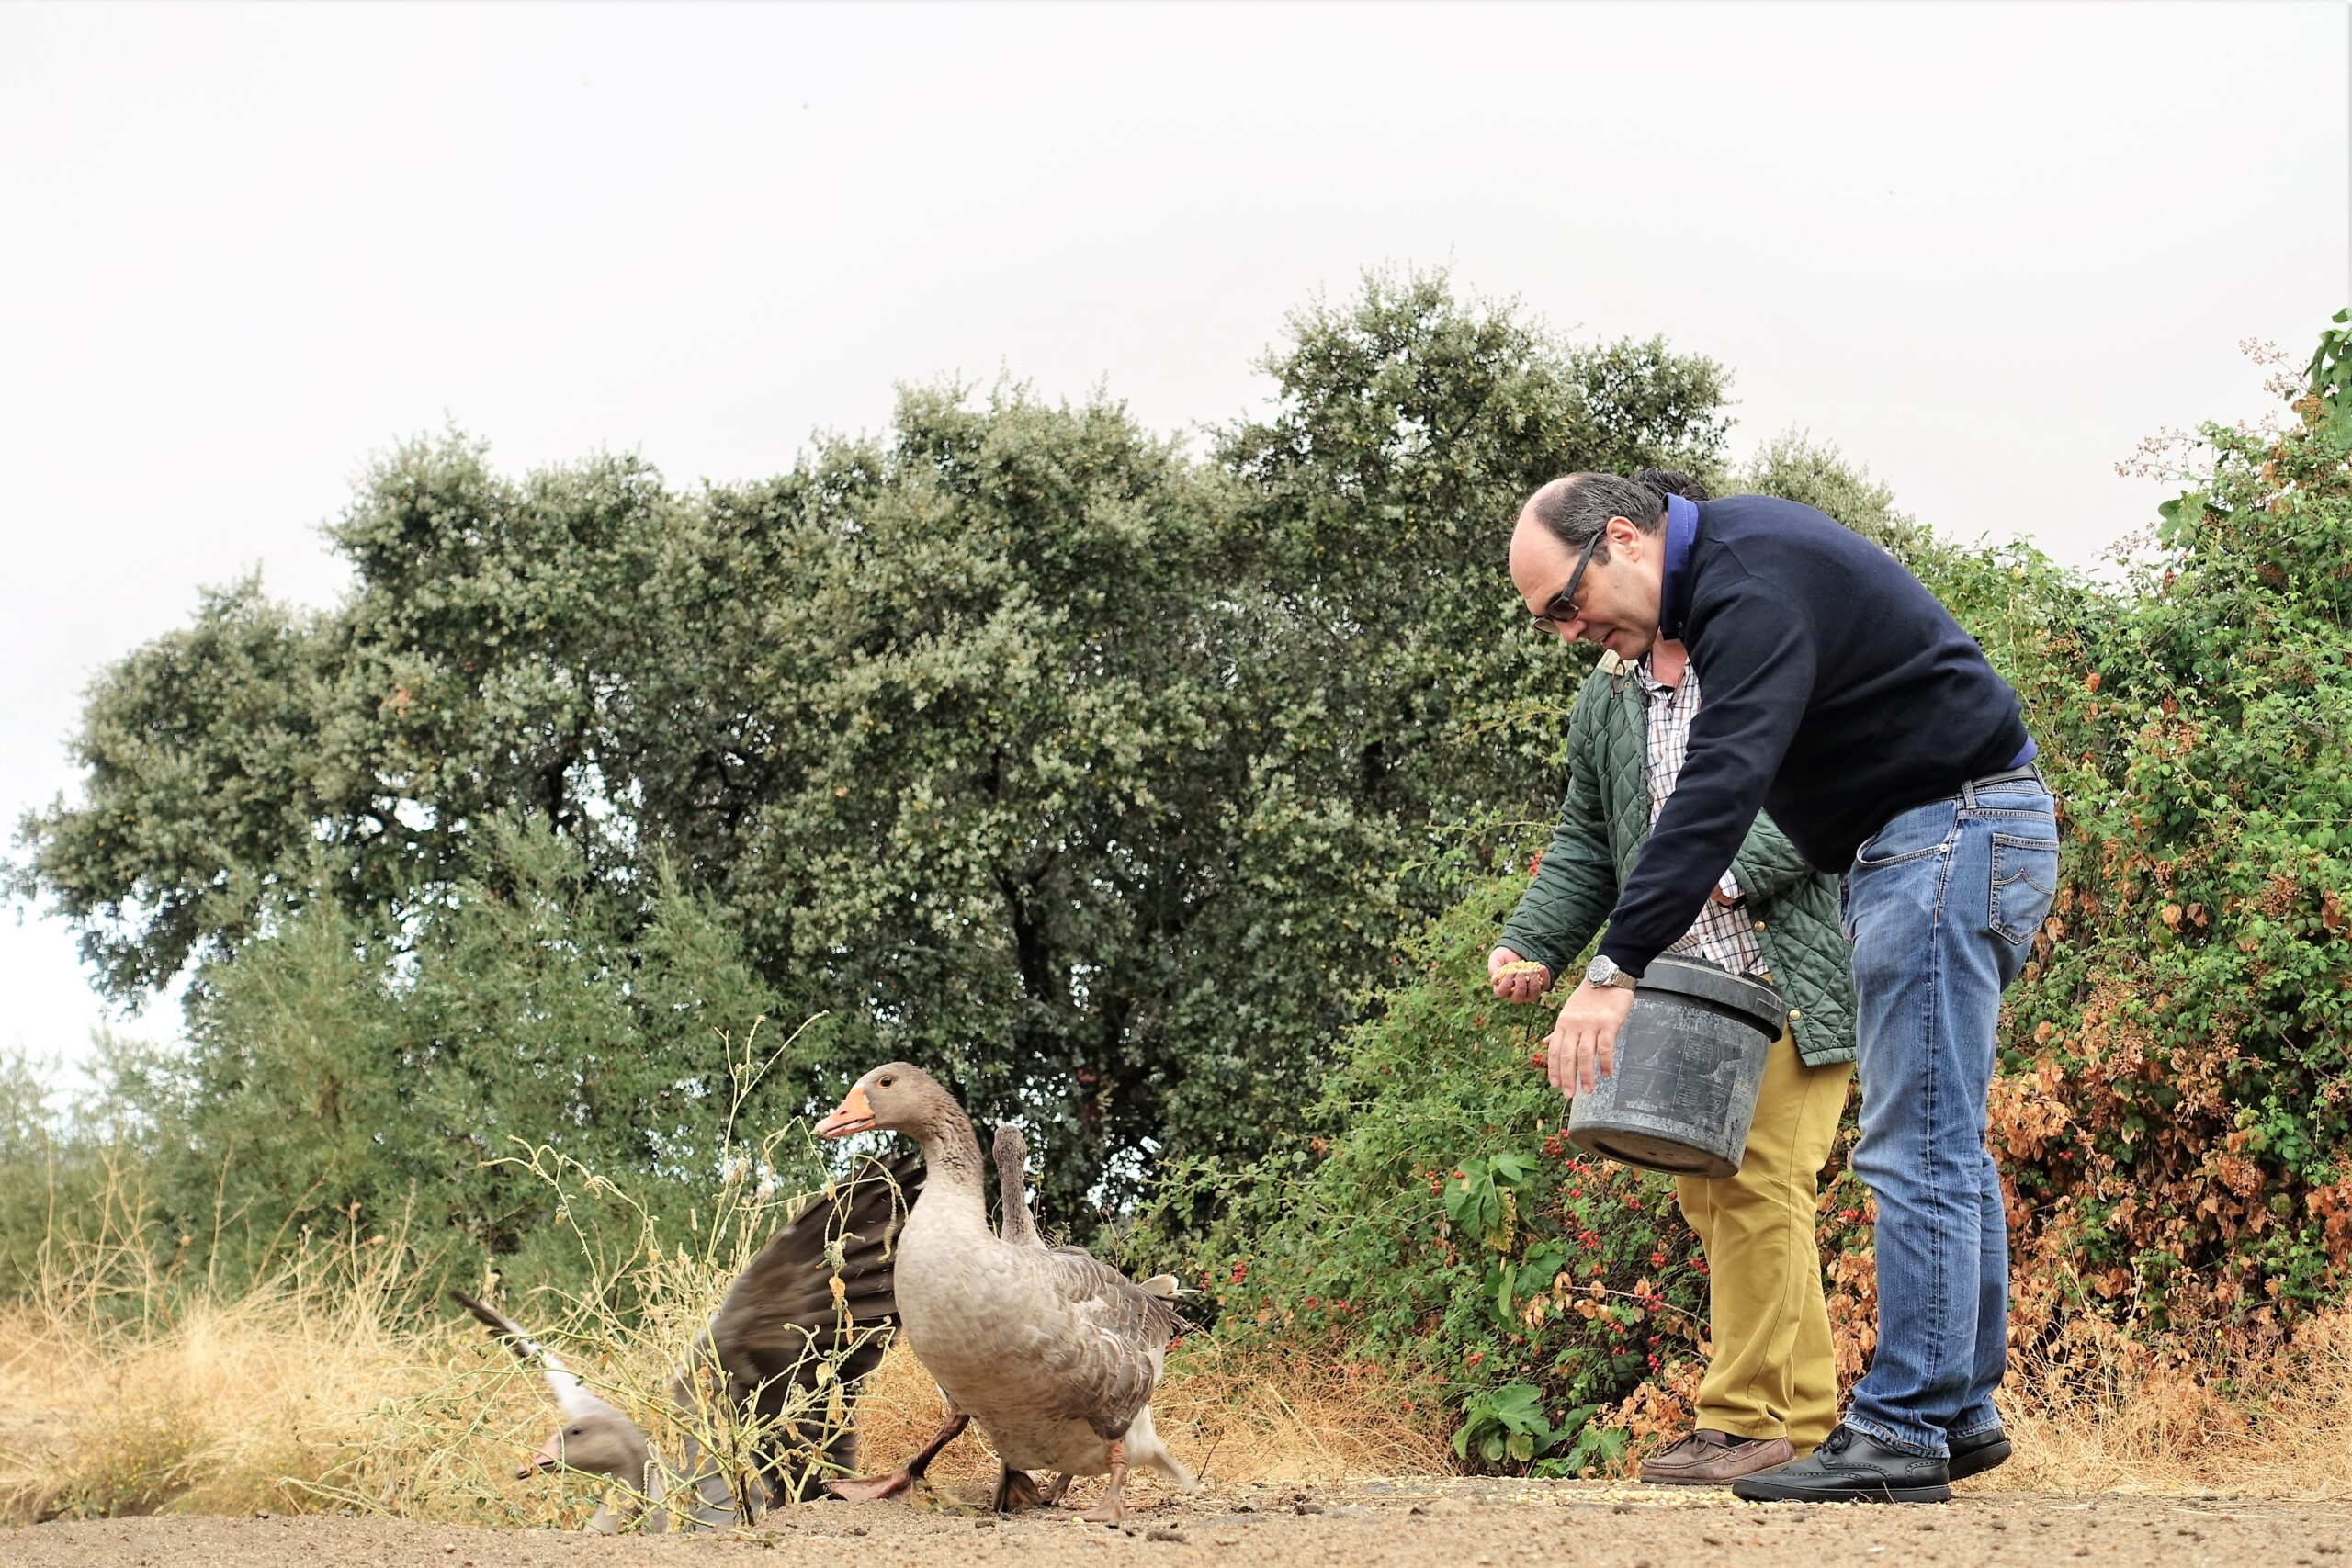 cruelty free foie gras. two chefs feed geese.